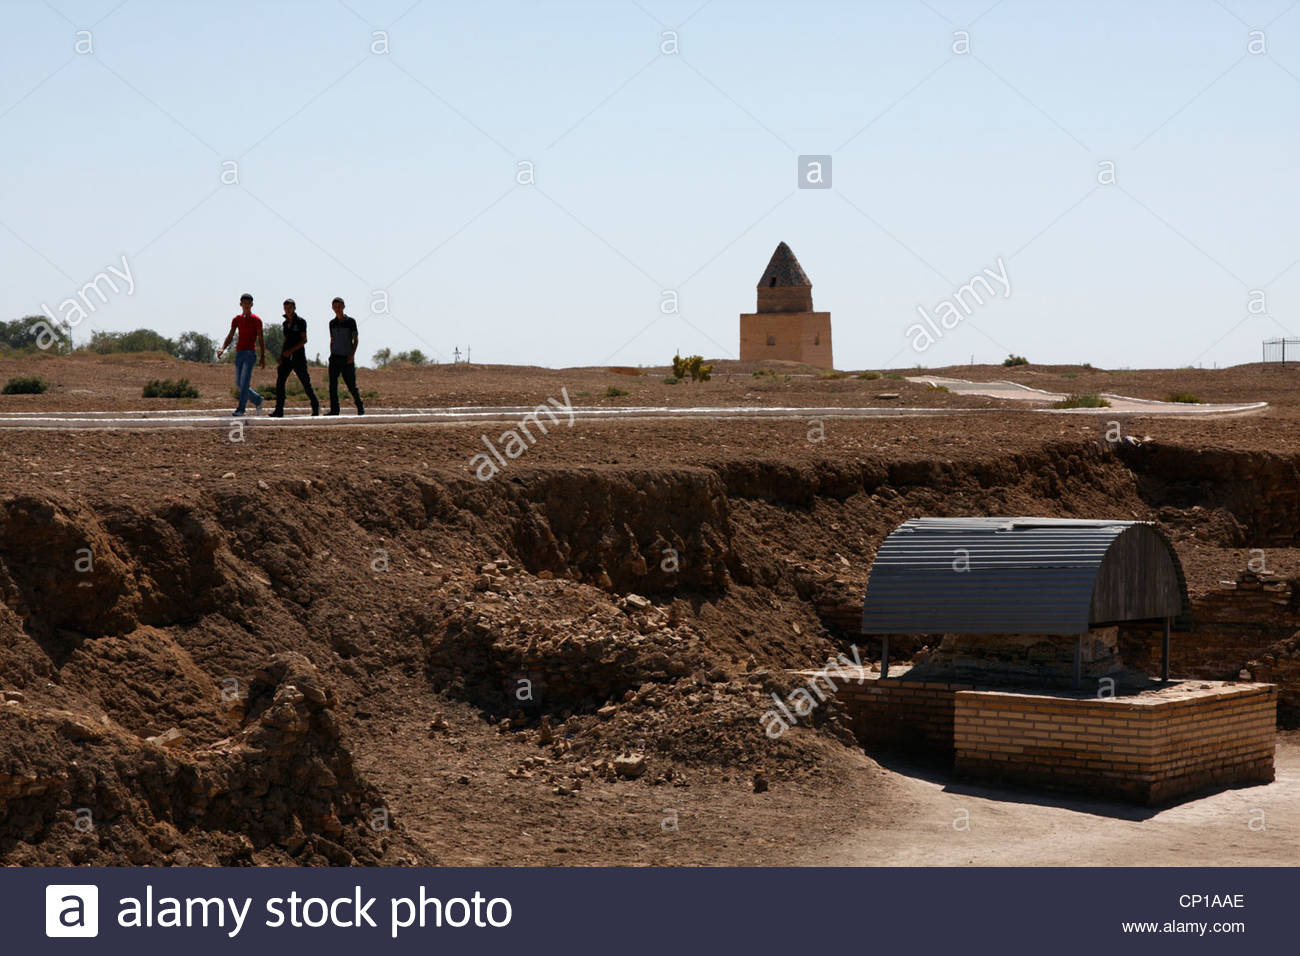 At the Kunya-Urgench site in Turkmenistan - Stock Image